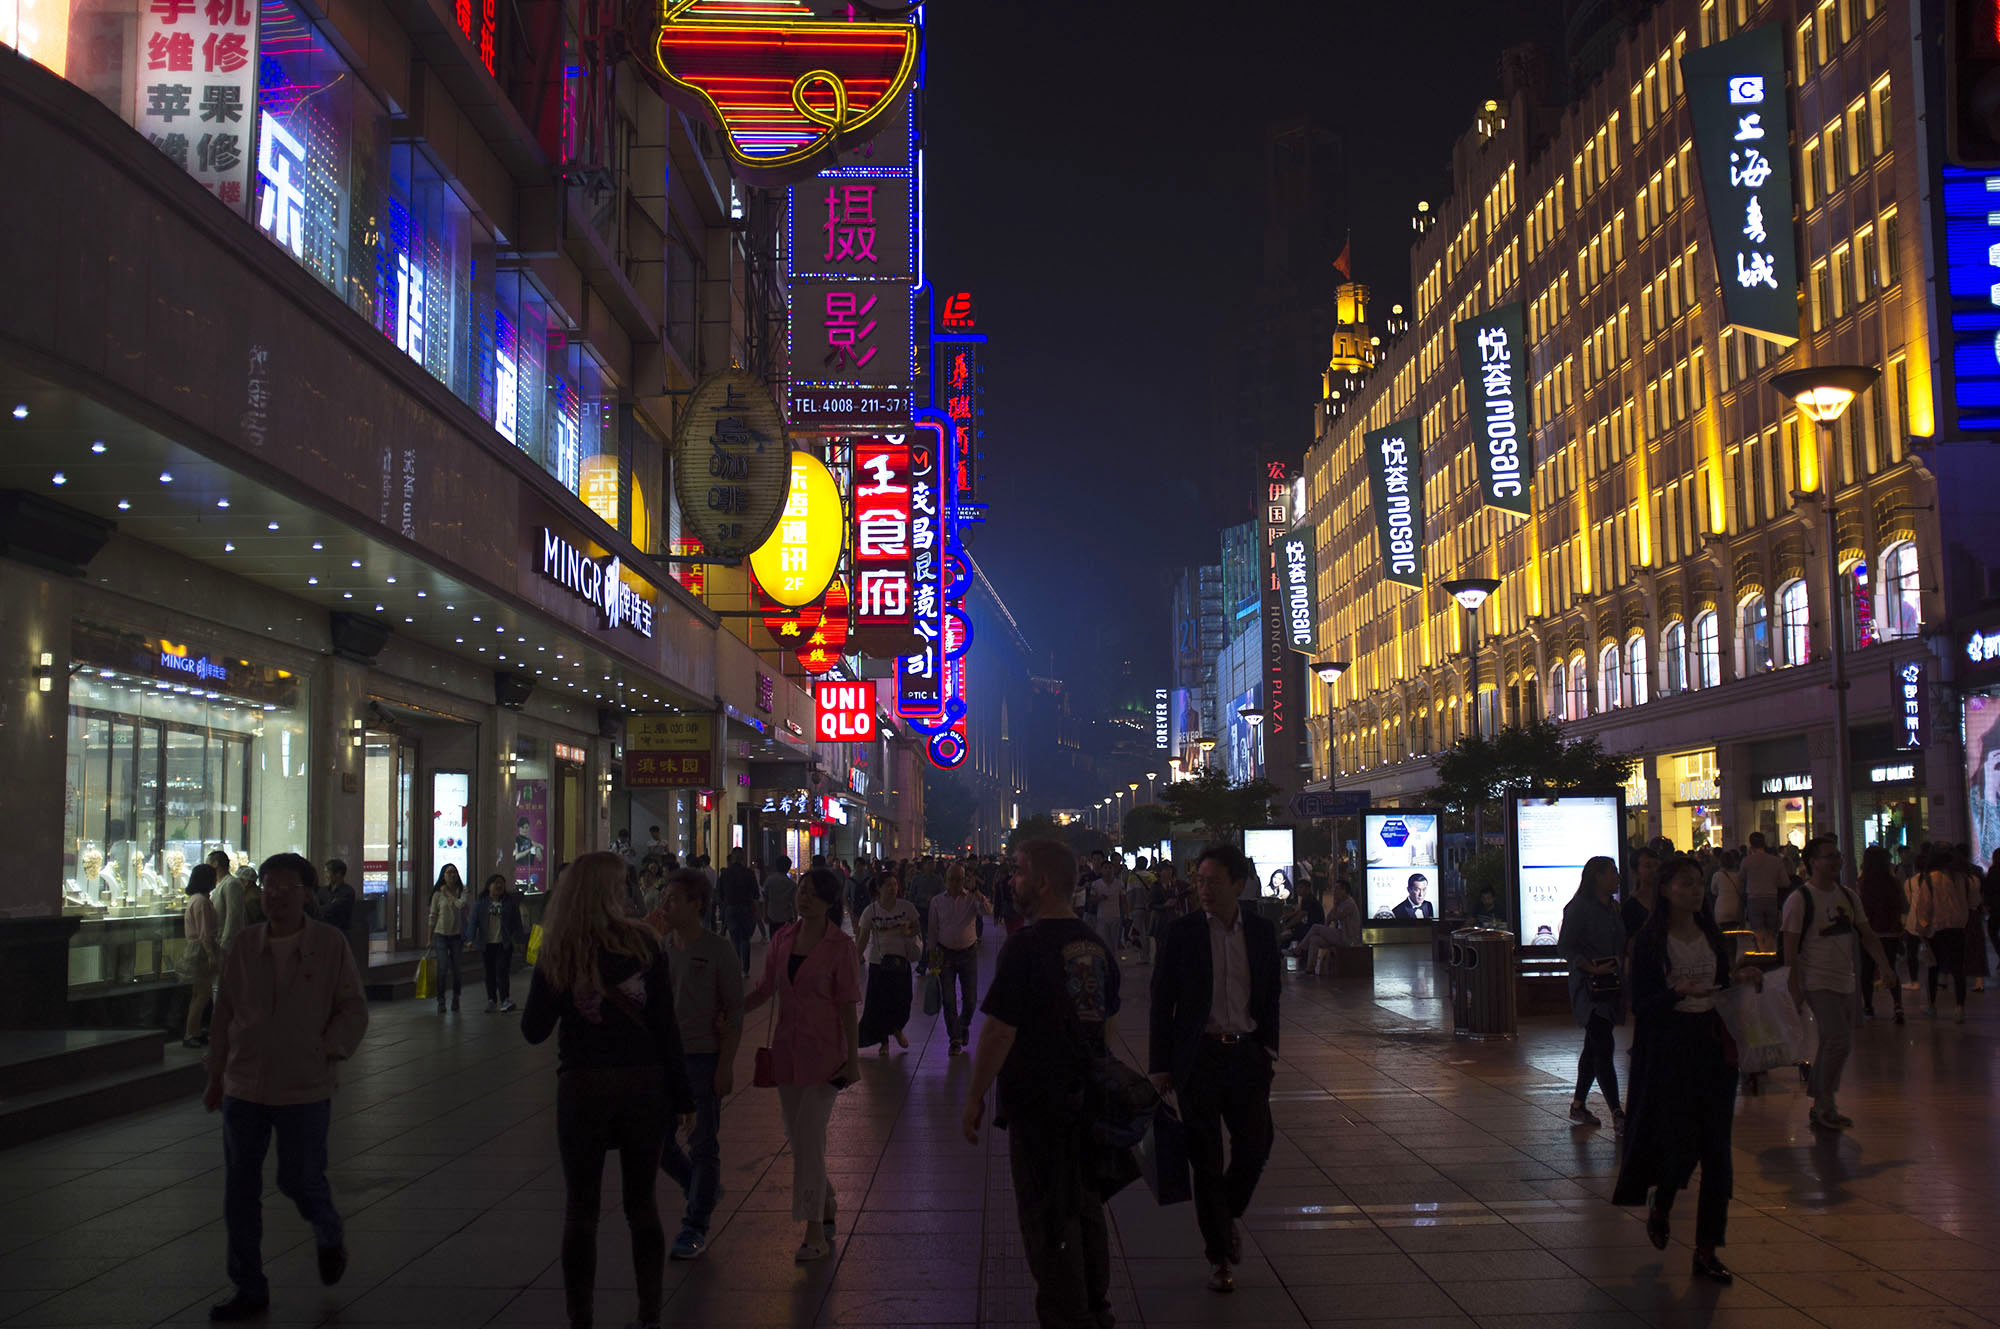 Nanjing Road at night.